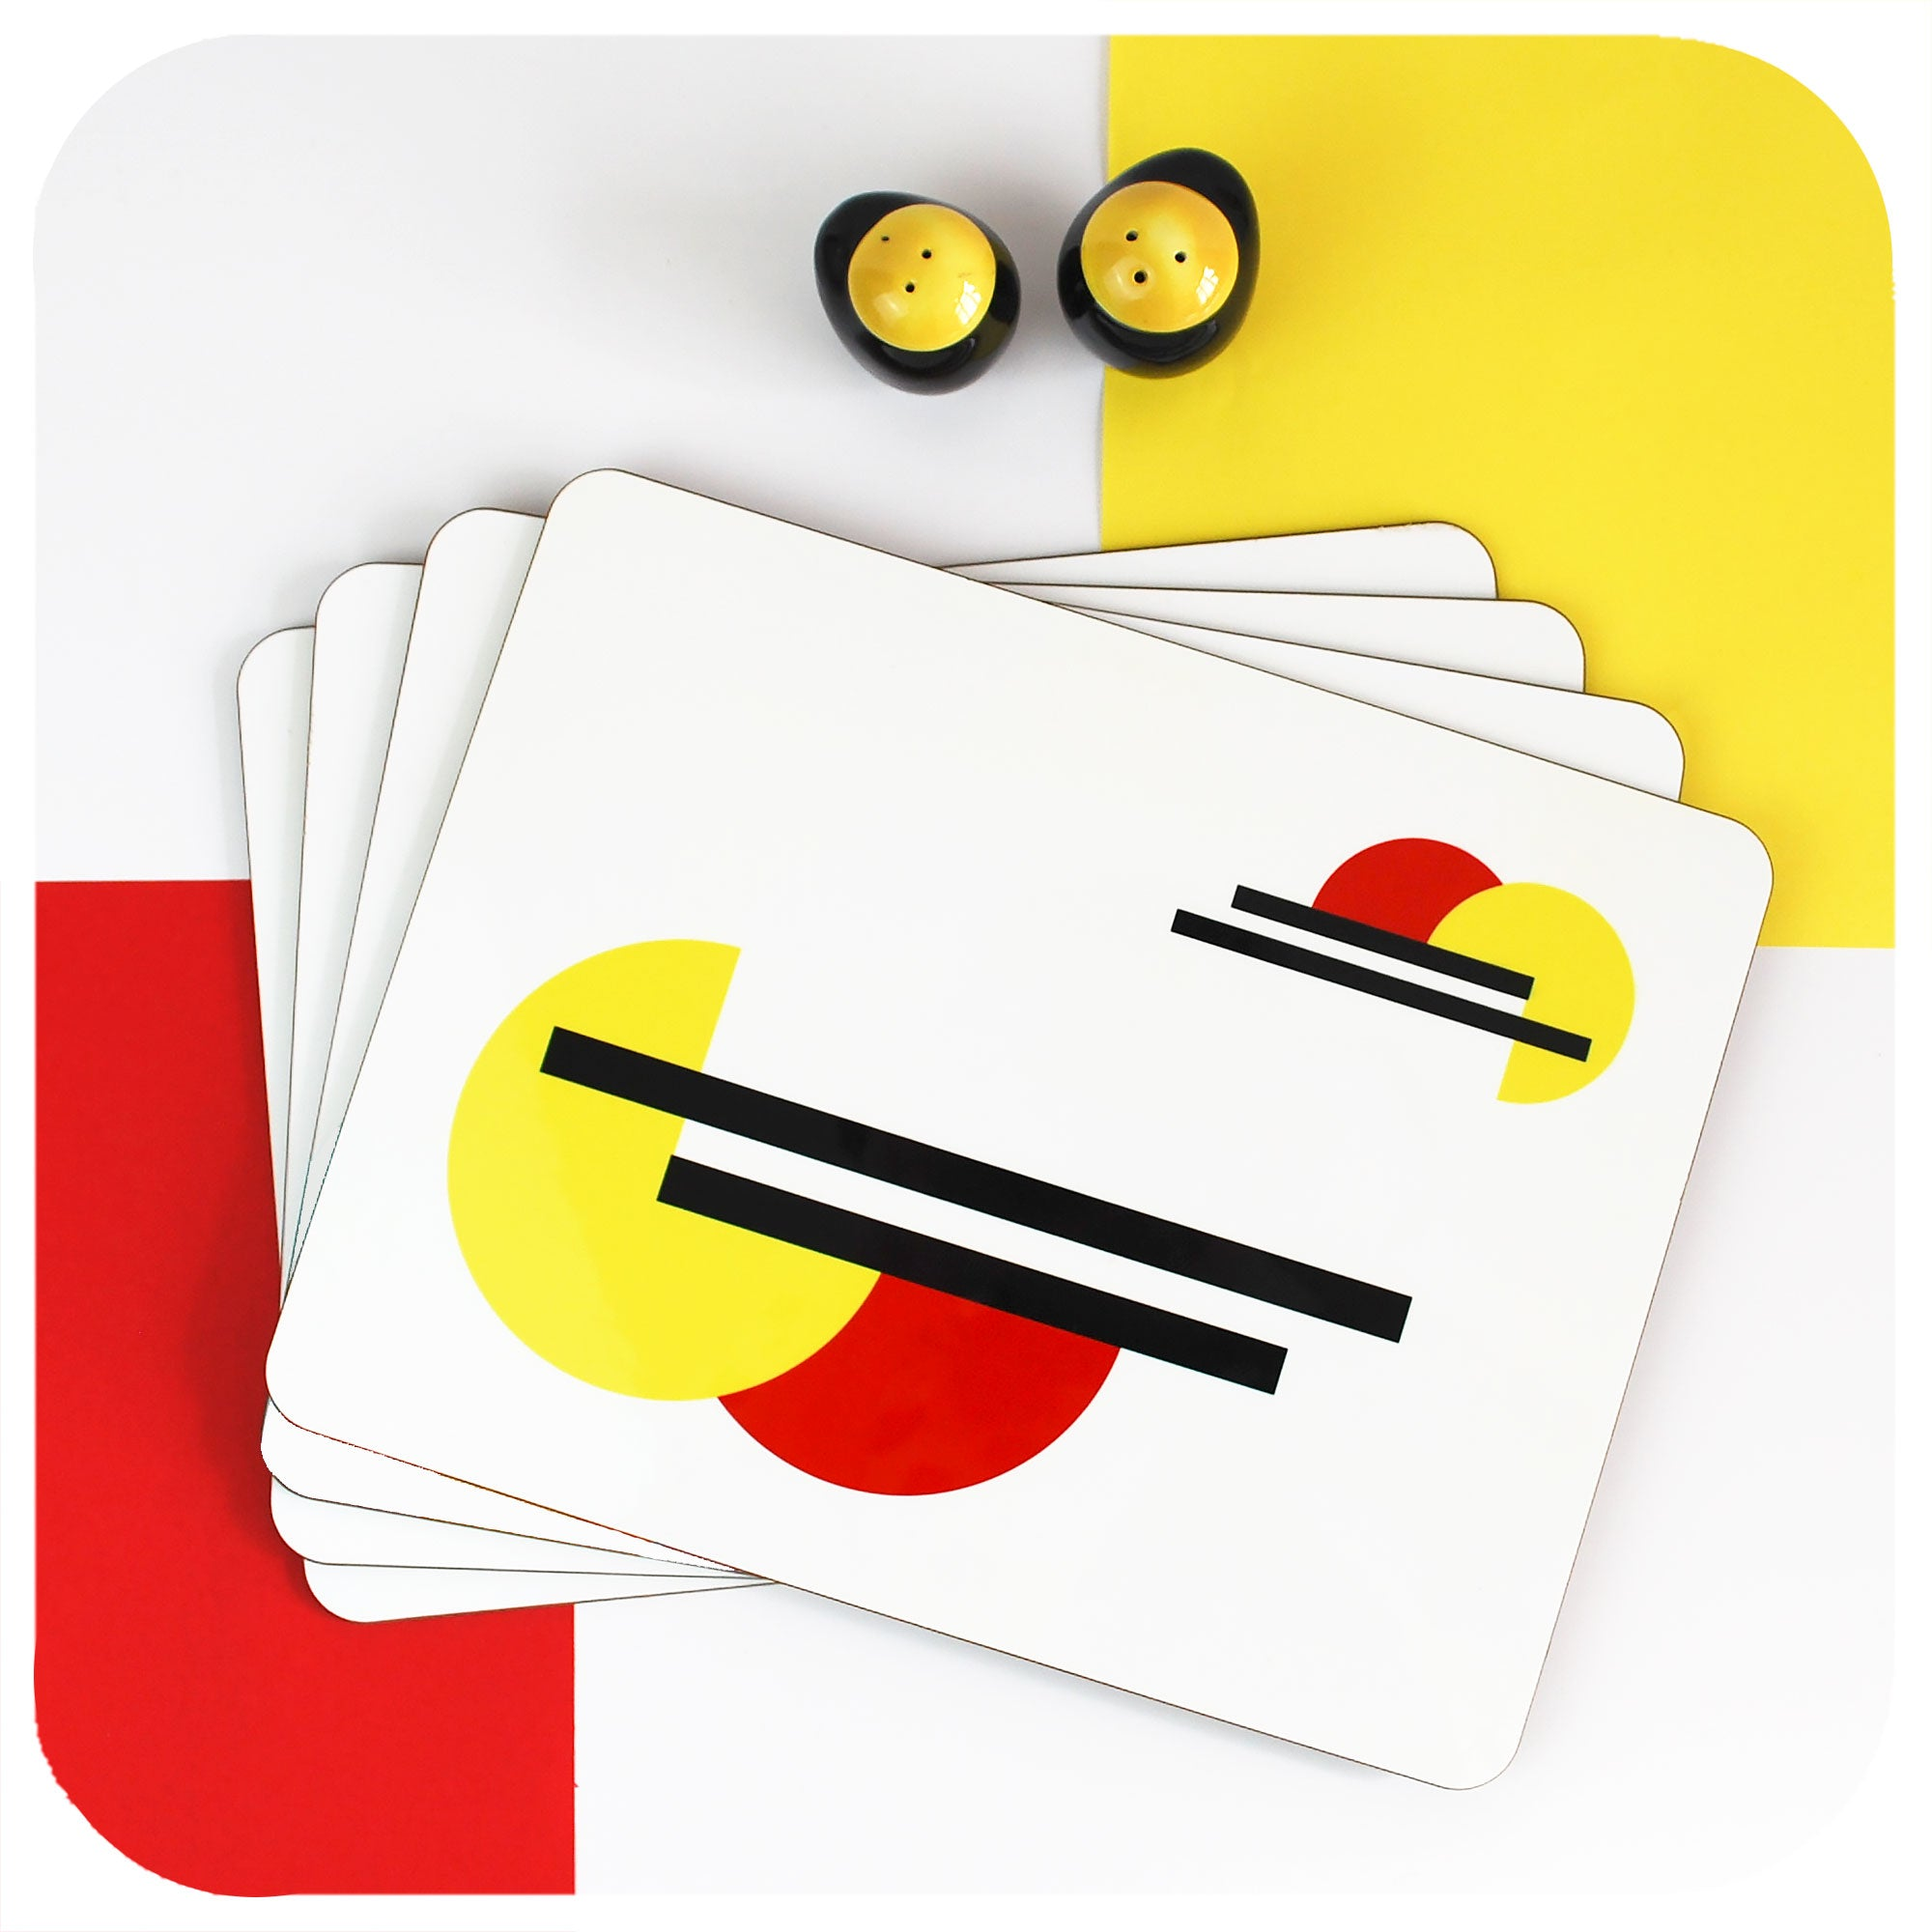 Bauhaus Placemats, set of 4 in a stack with vintage salt & pepper shakers | The Inkabilly Emporium